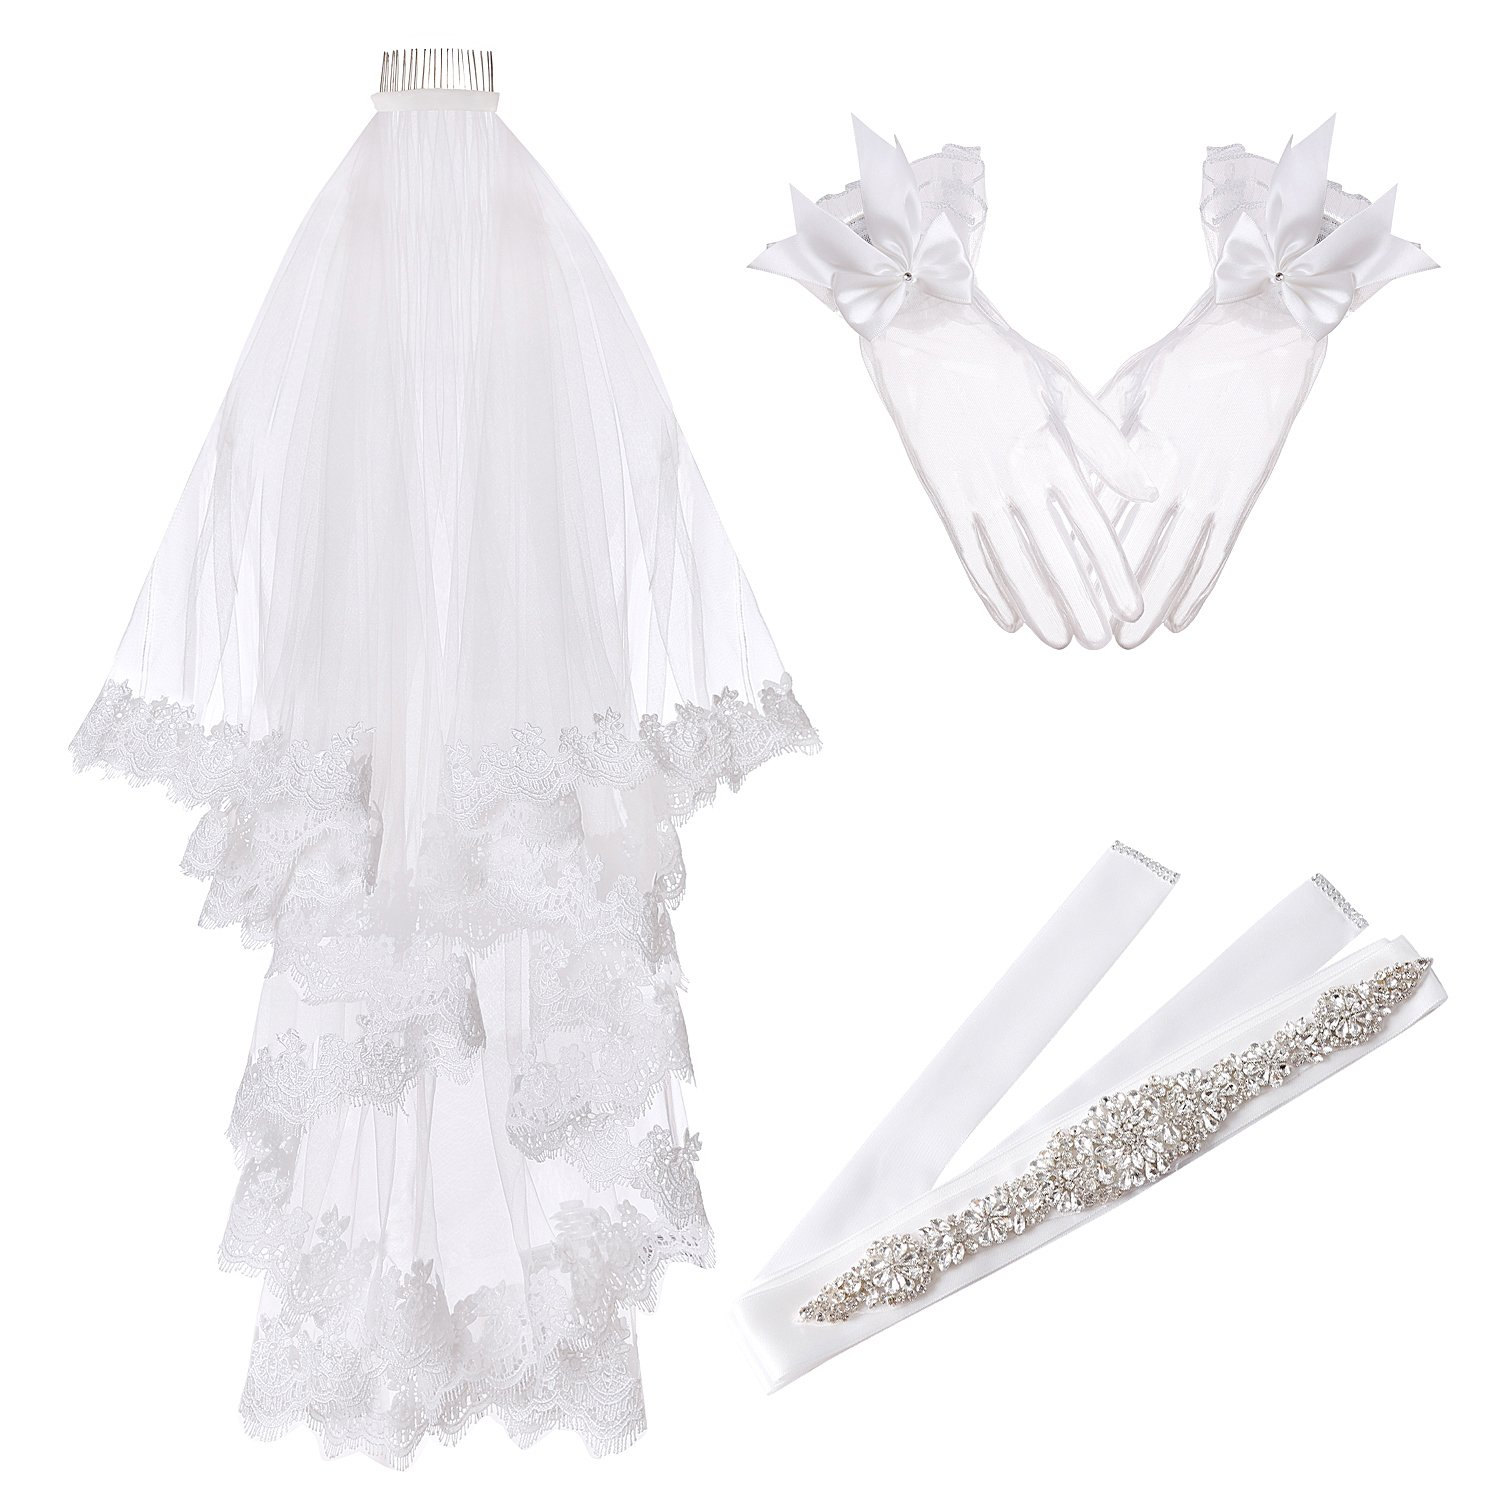 Molliya 3pcs Wedding Bridal Decorations Kit, Veil Sash Gloves Set for Party Supplies Wedding Bridal Shower Supplies